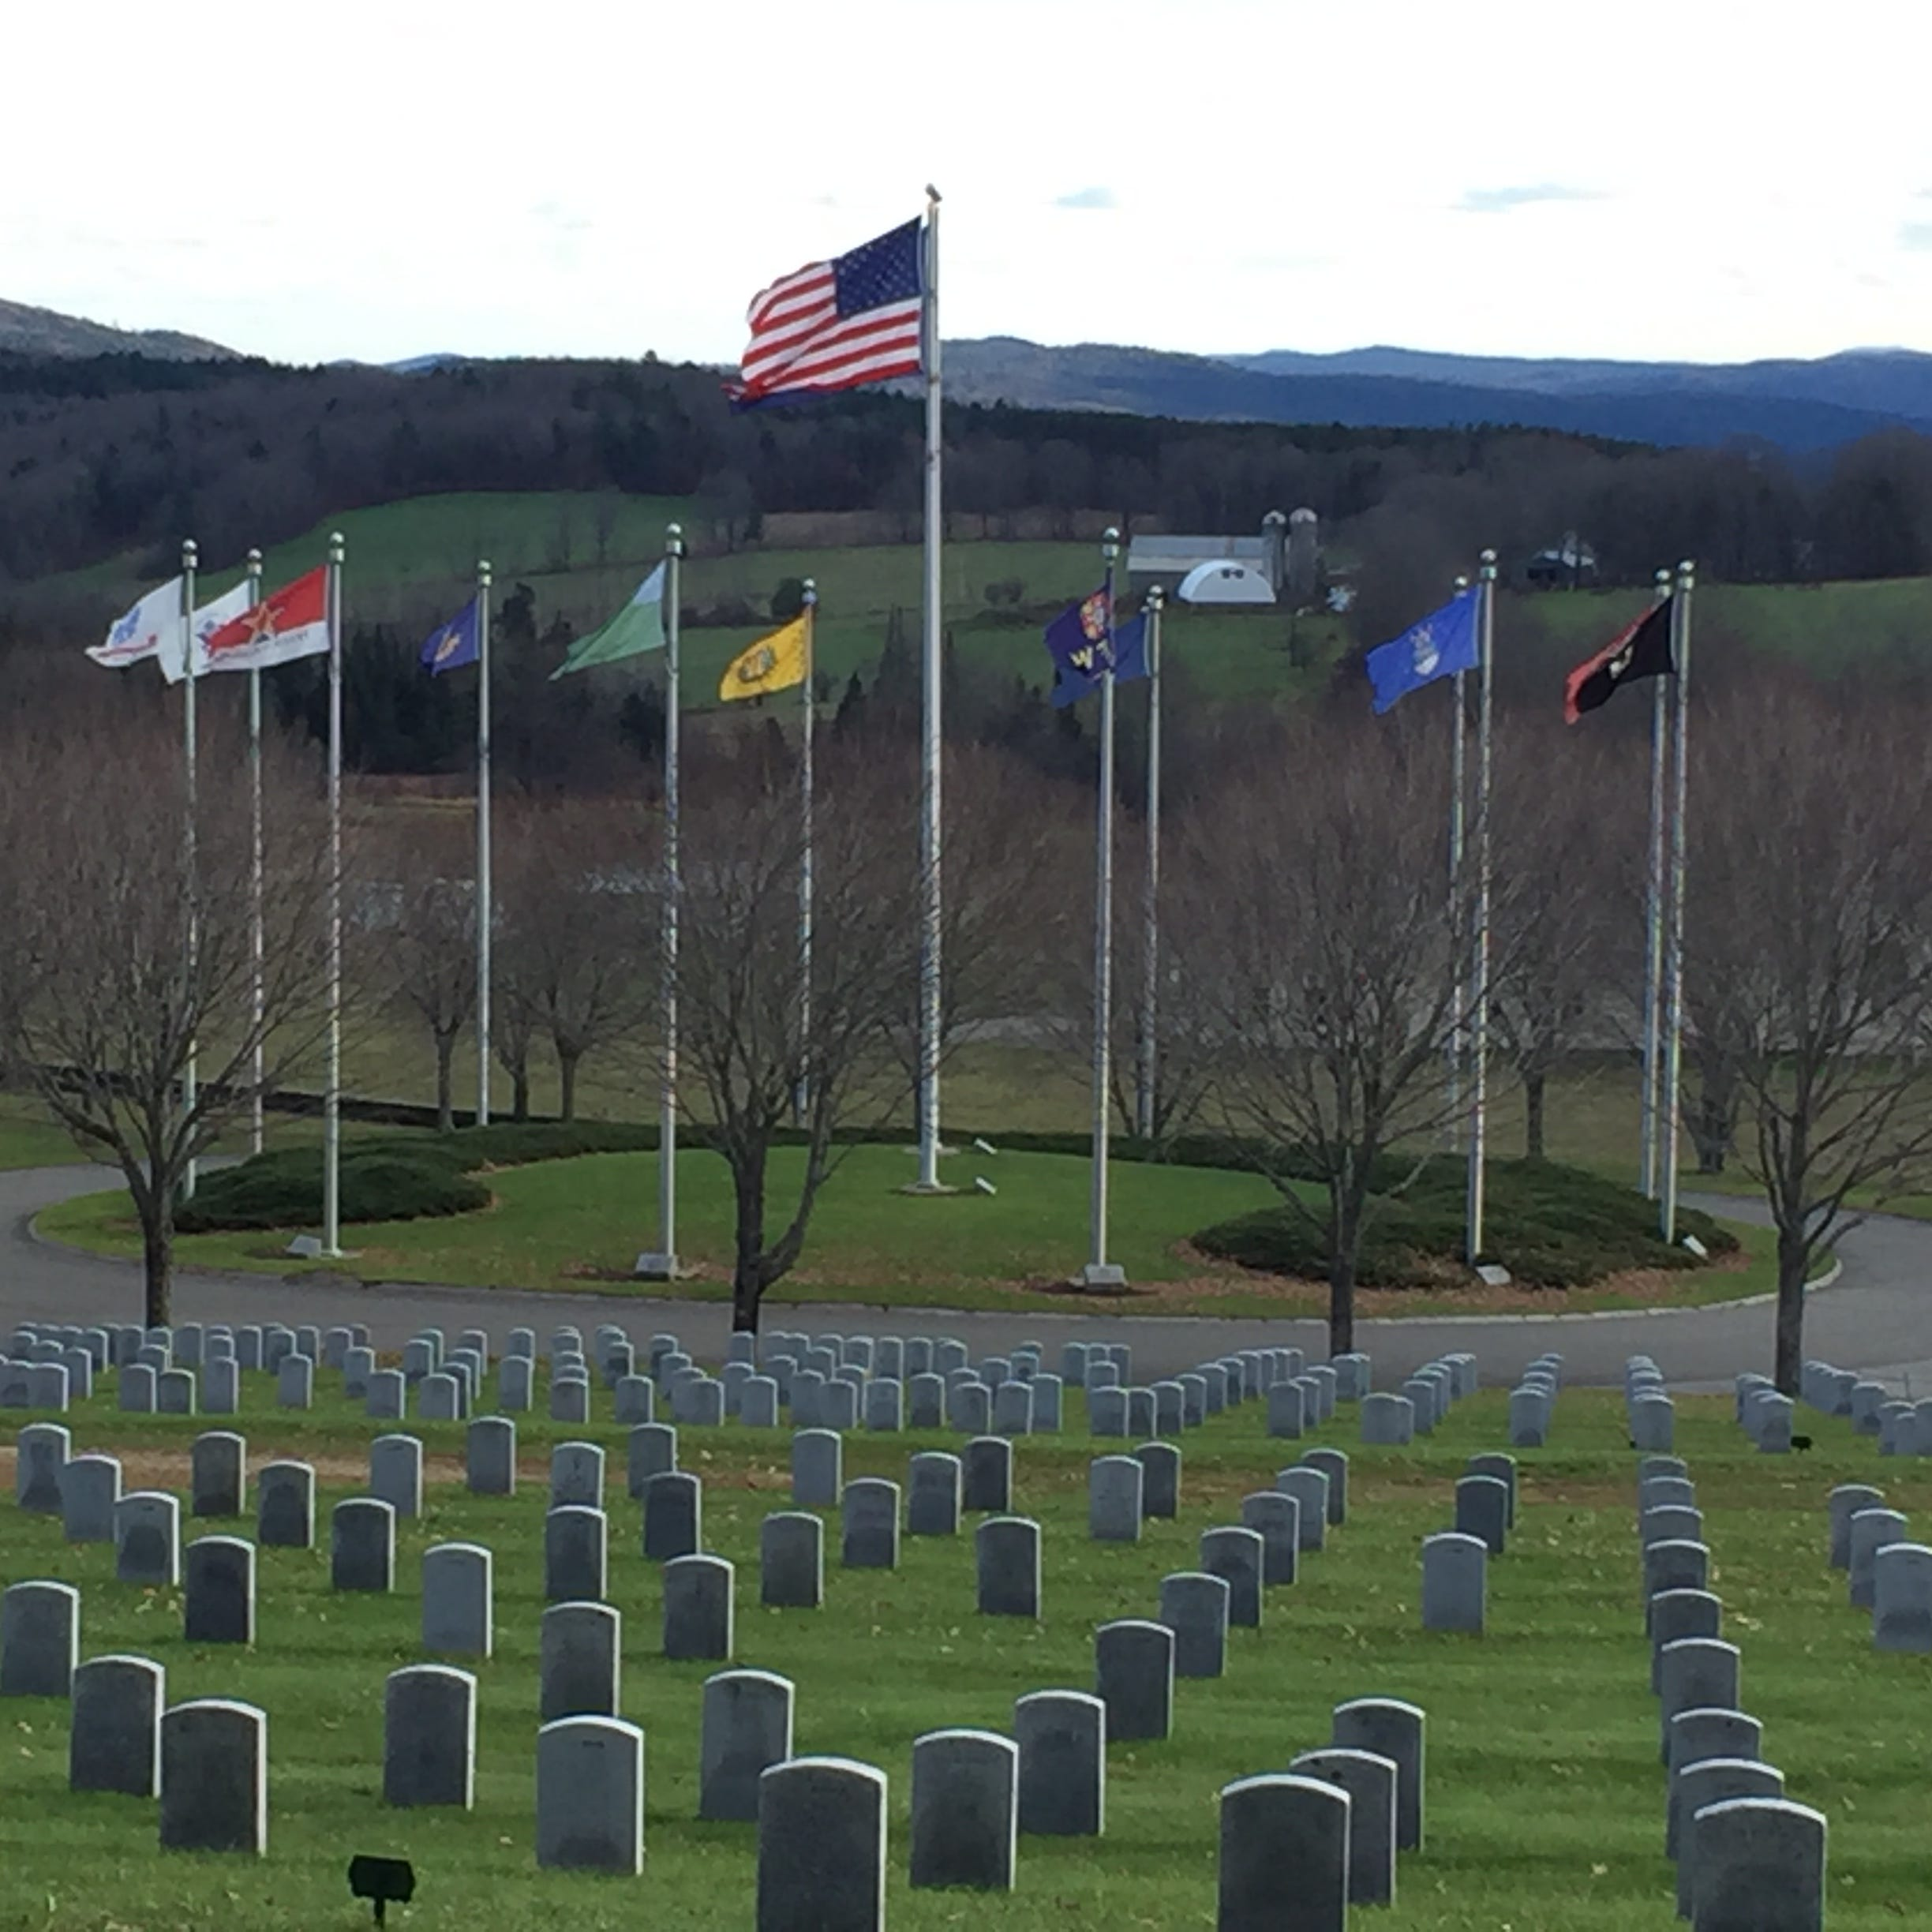 Vermont Veterans Cemetery: How veterans and their families can apply for burial